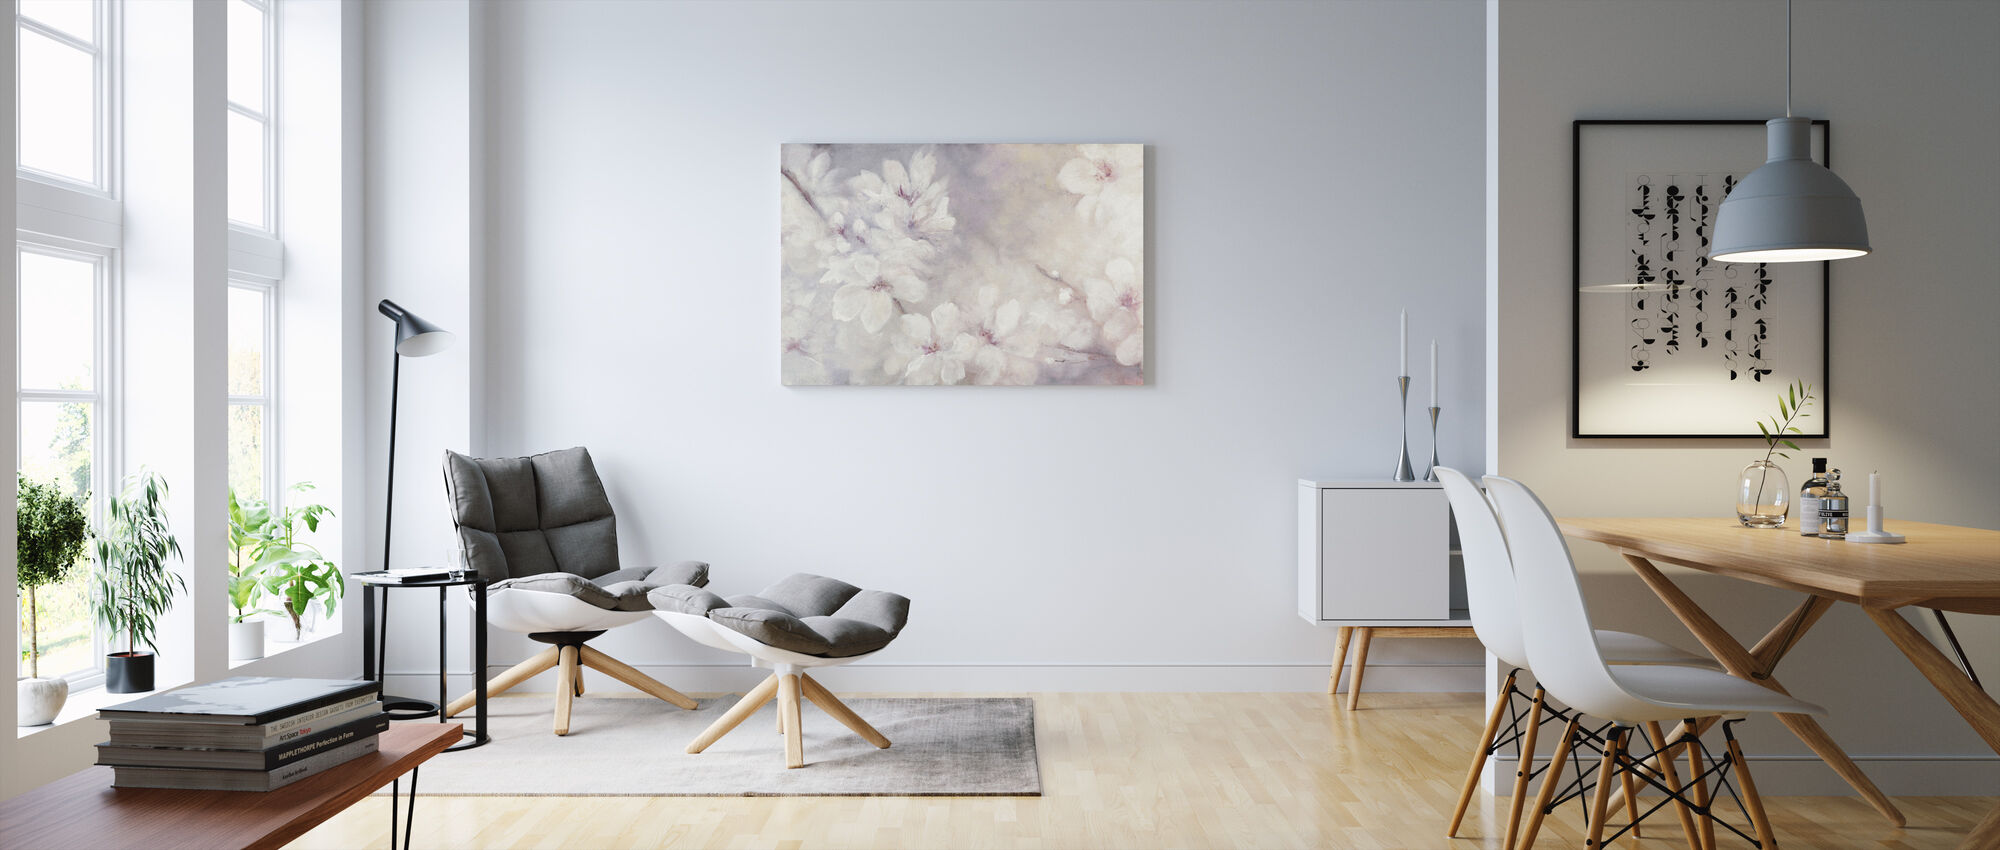 Cherry Blossoms Painting - Canvas print - Living Room